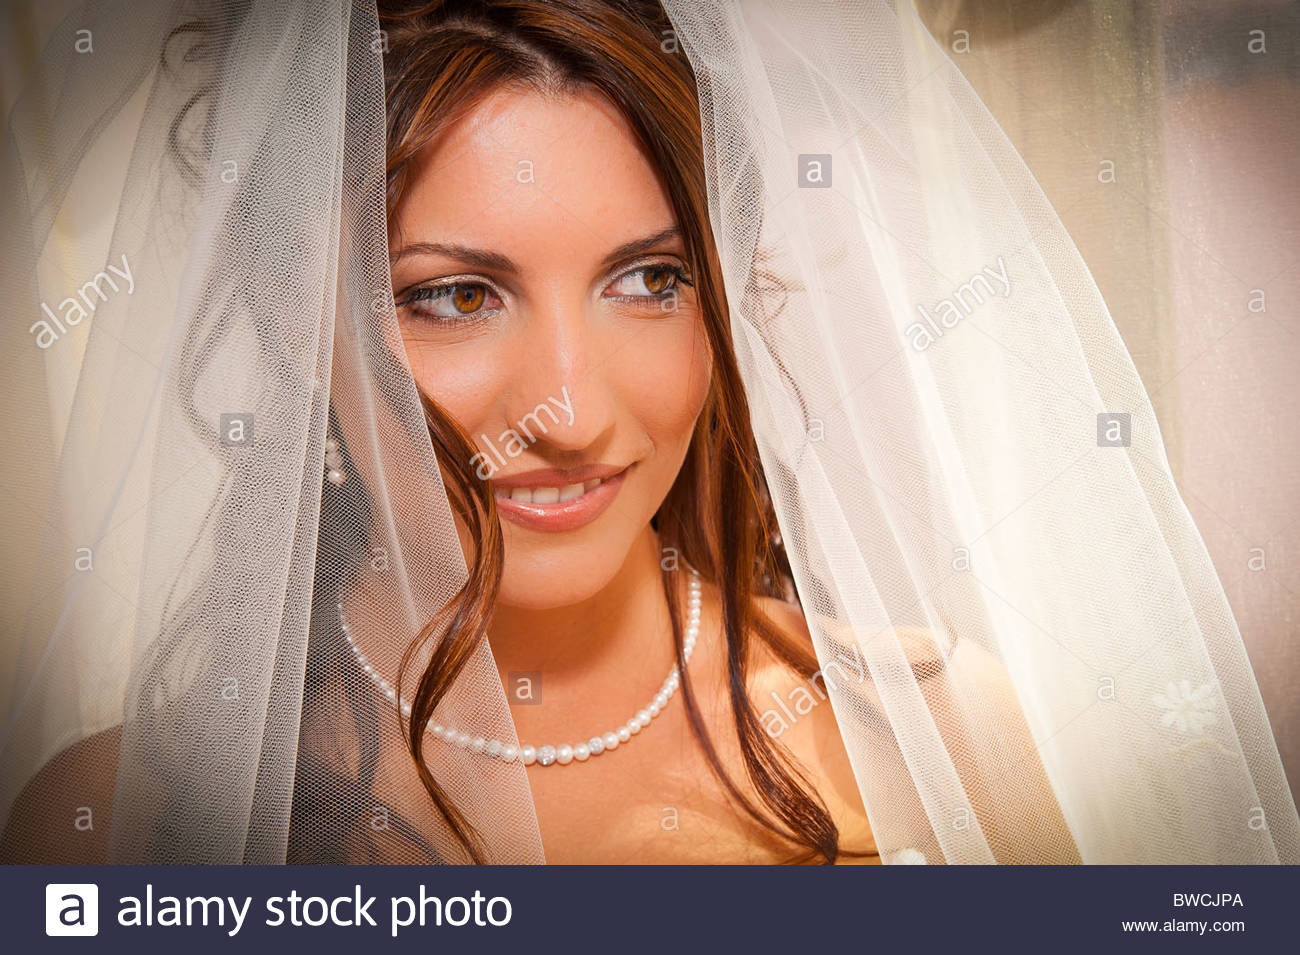 Bride with veil - Stock Image